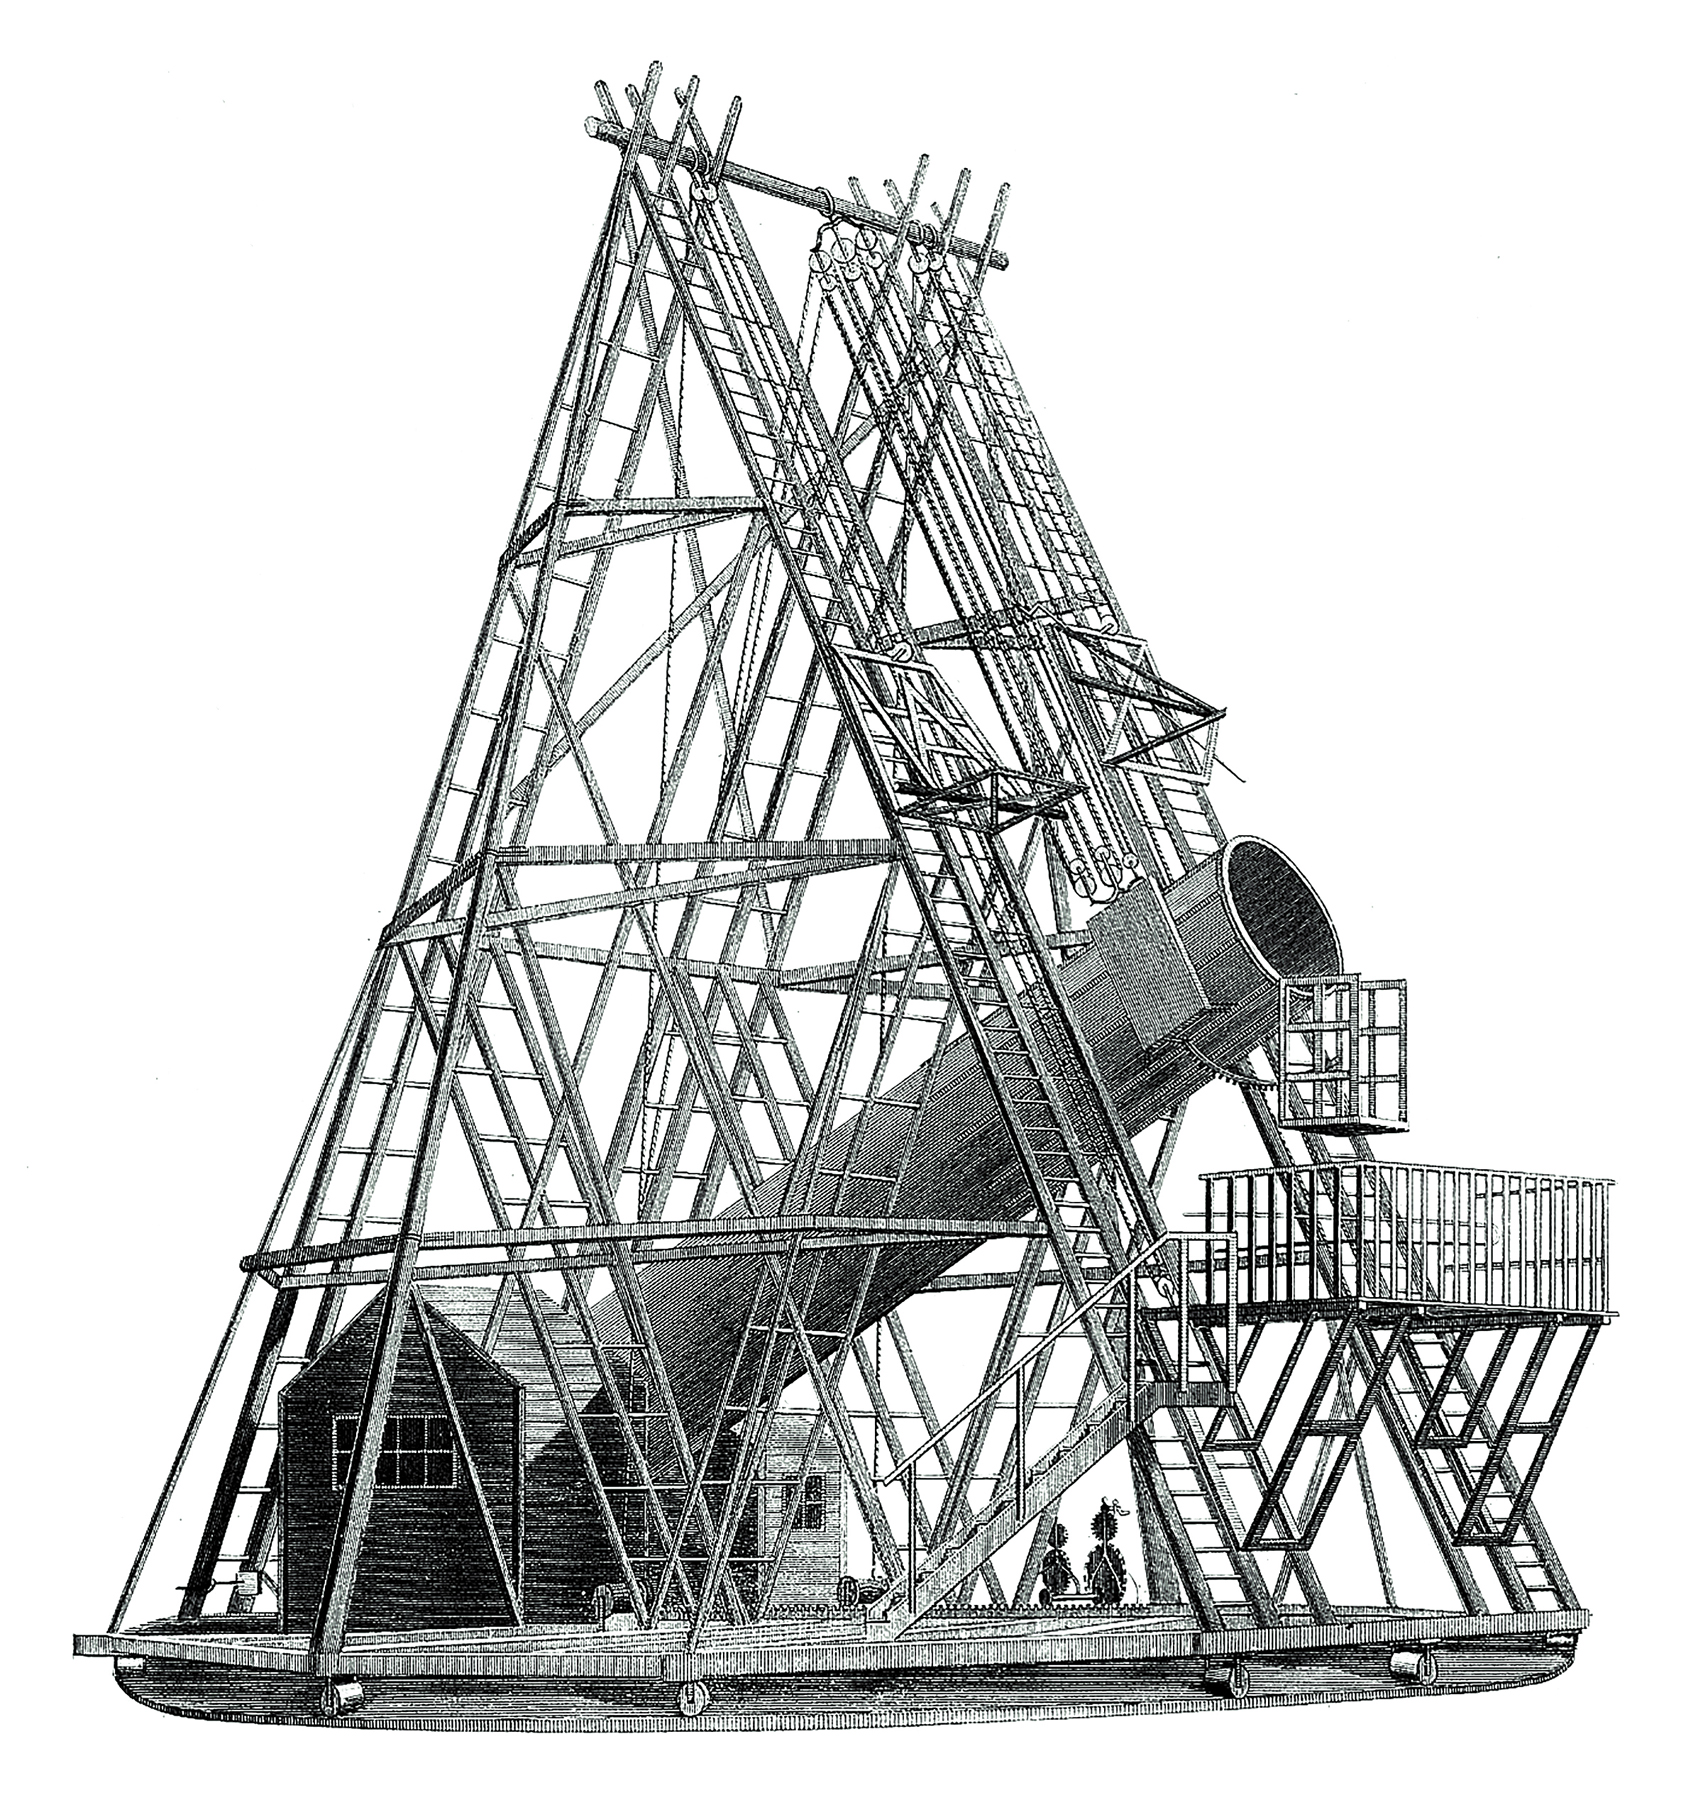 An illustration of Herschel's 40-foot reflecting telescope from Charles Hutton's A Philosophical and Mathematical Dictionary, 1815.